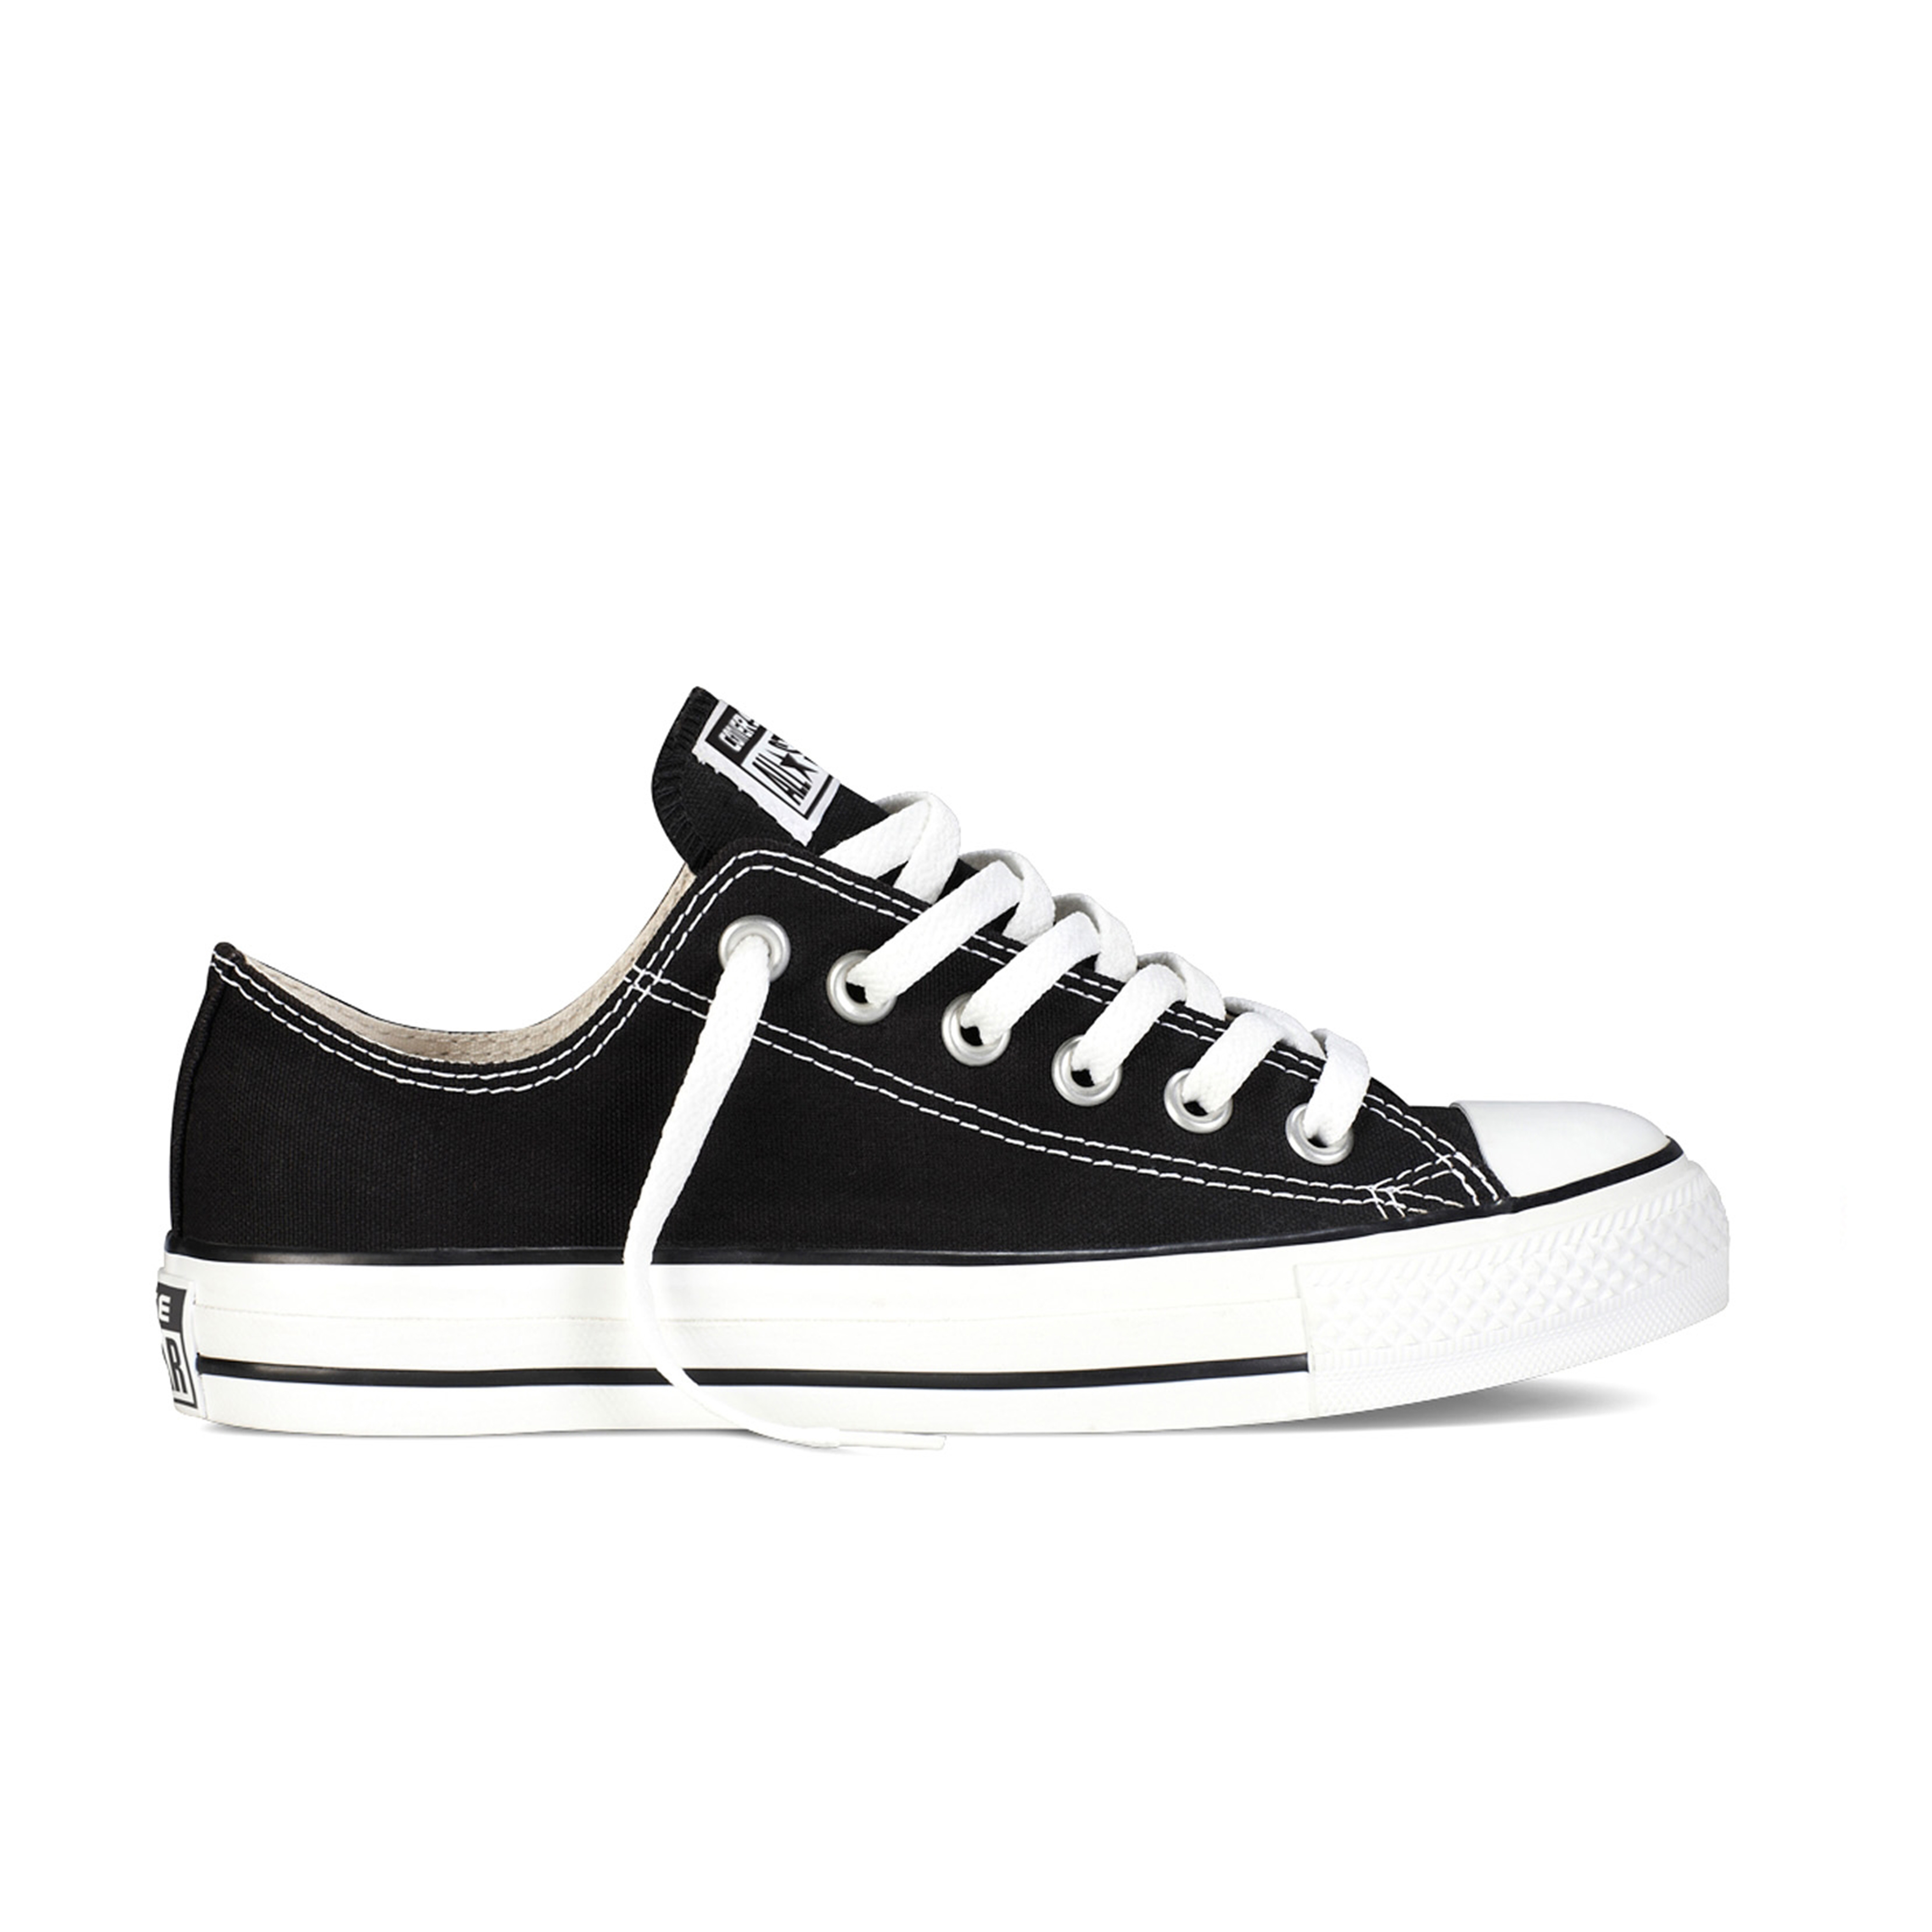 Sneakers Uomo All Star Ox Converse M9166C.001  -7